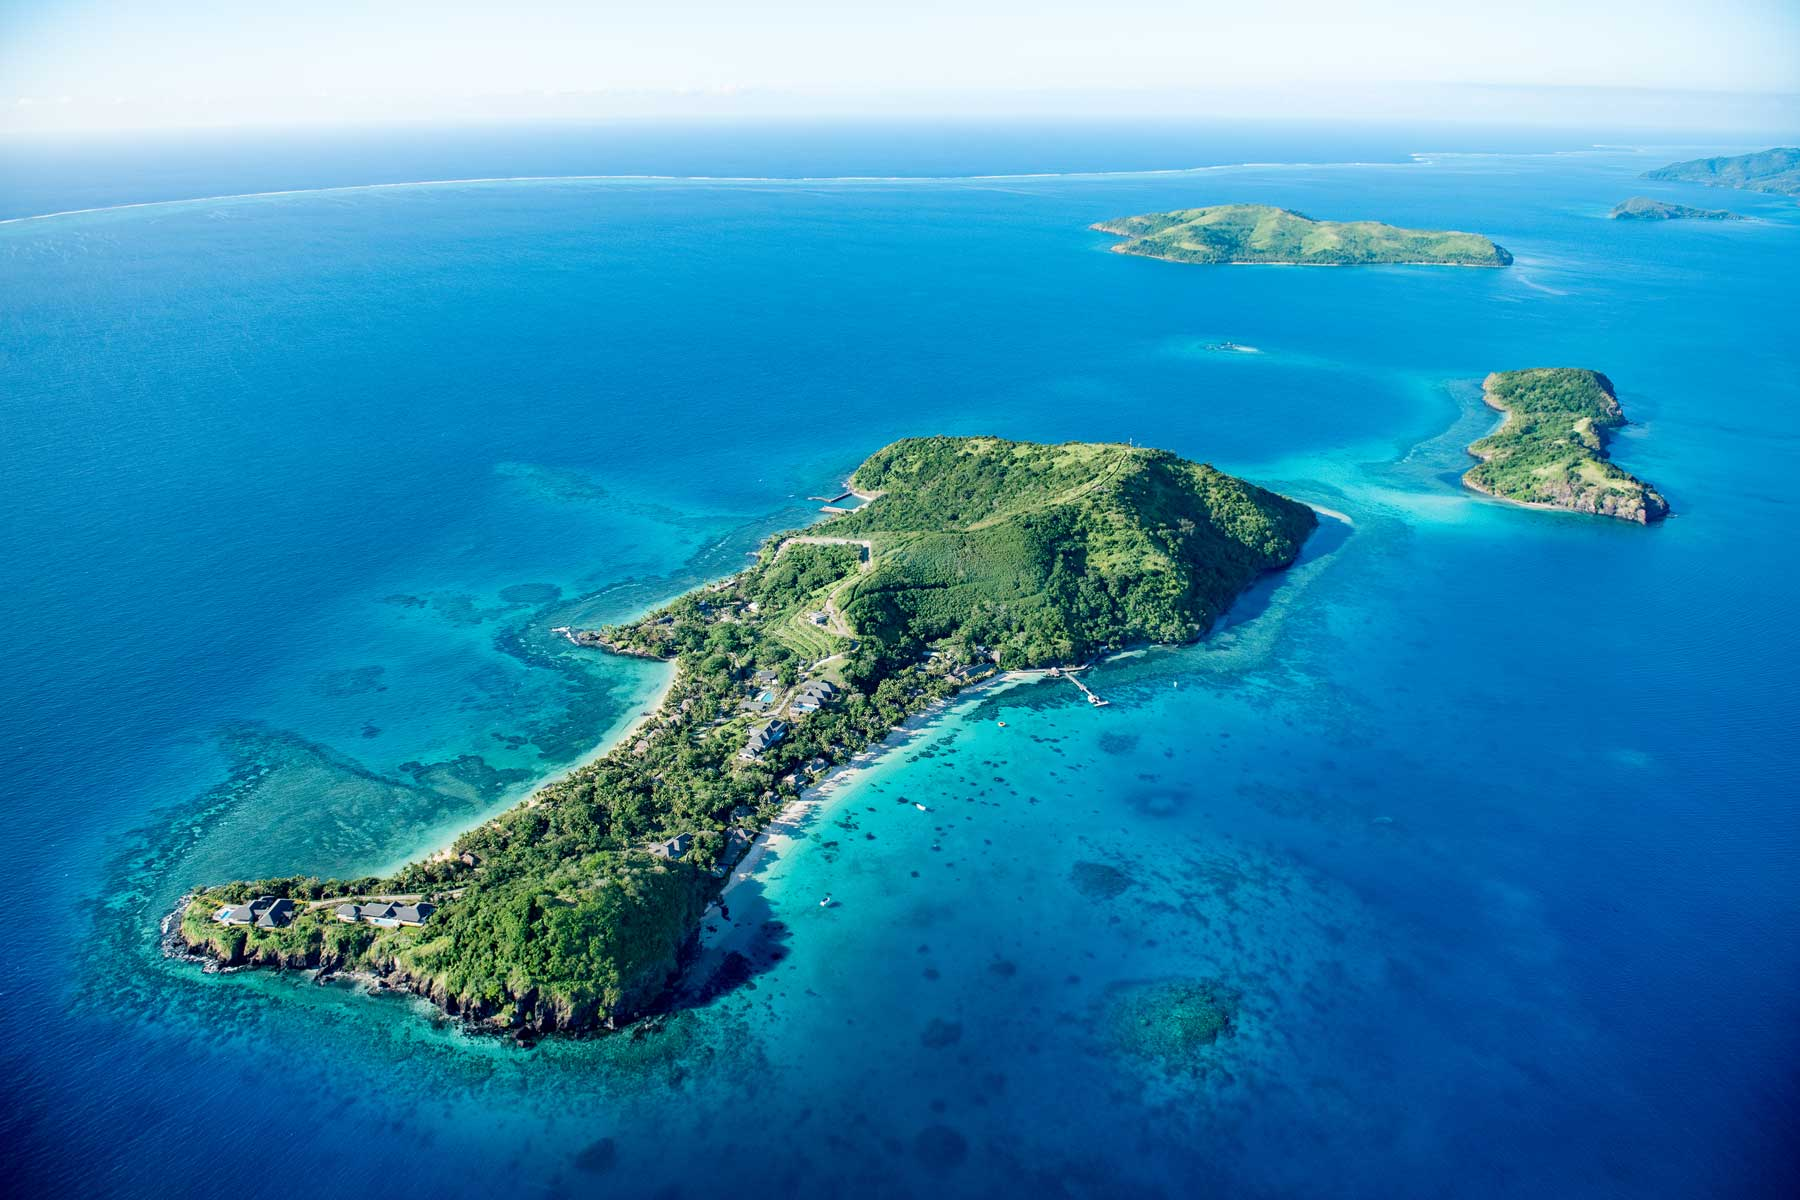 Aerial view Kokomo Private Island Fiji surrounded by blue water